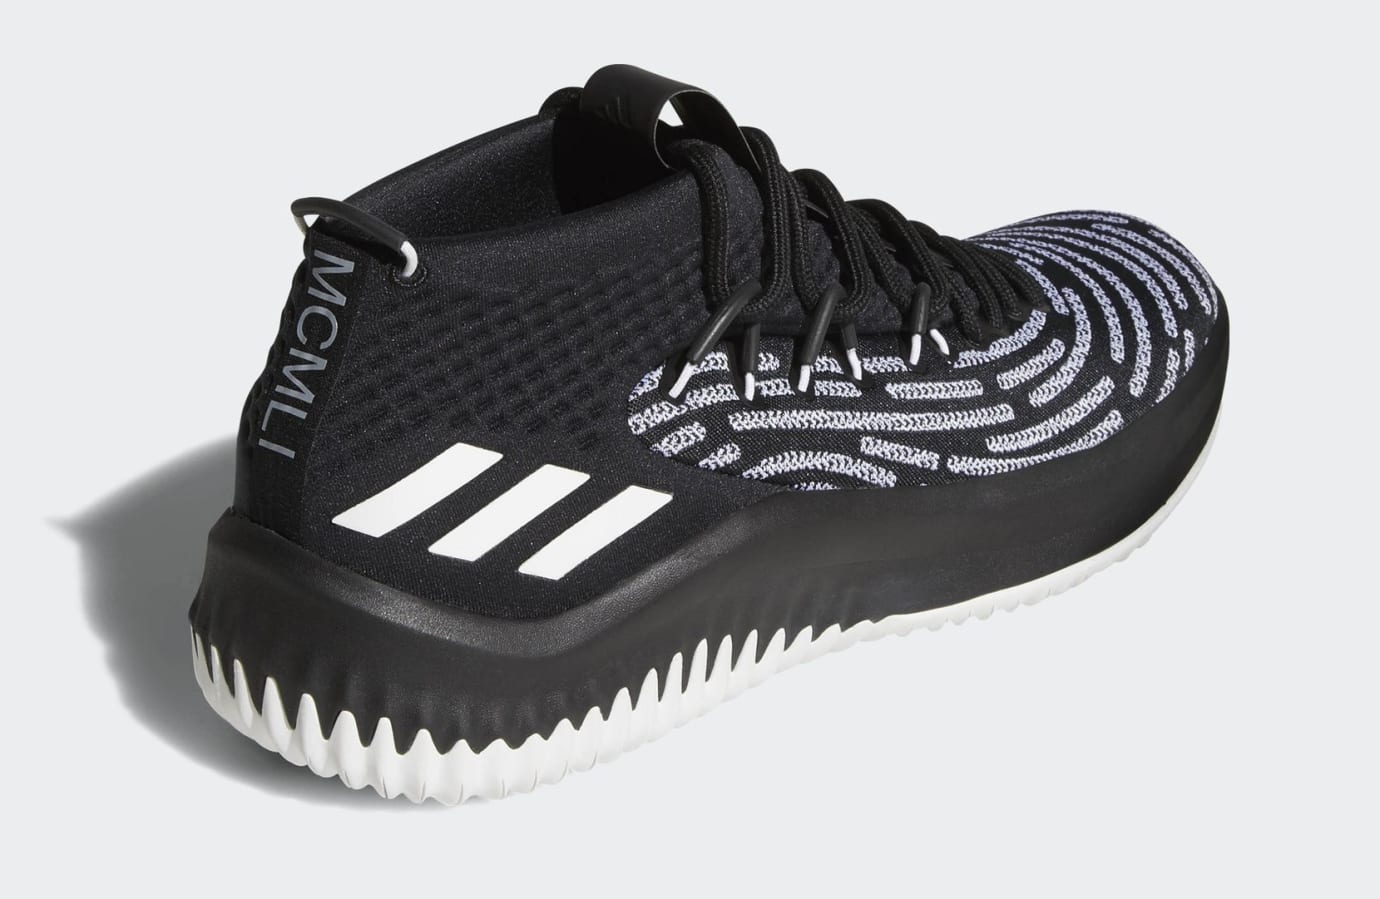 Adidas Dame 4 'Black History Month' AQ0380 Release Date